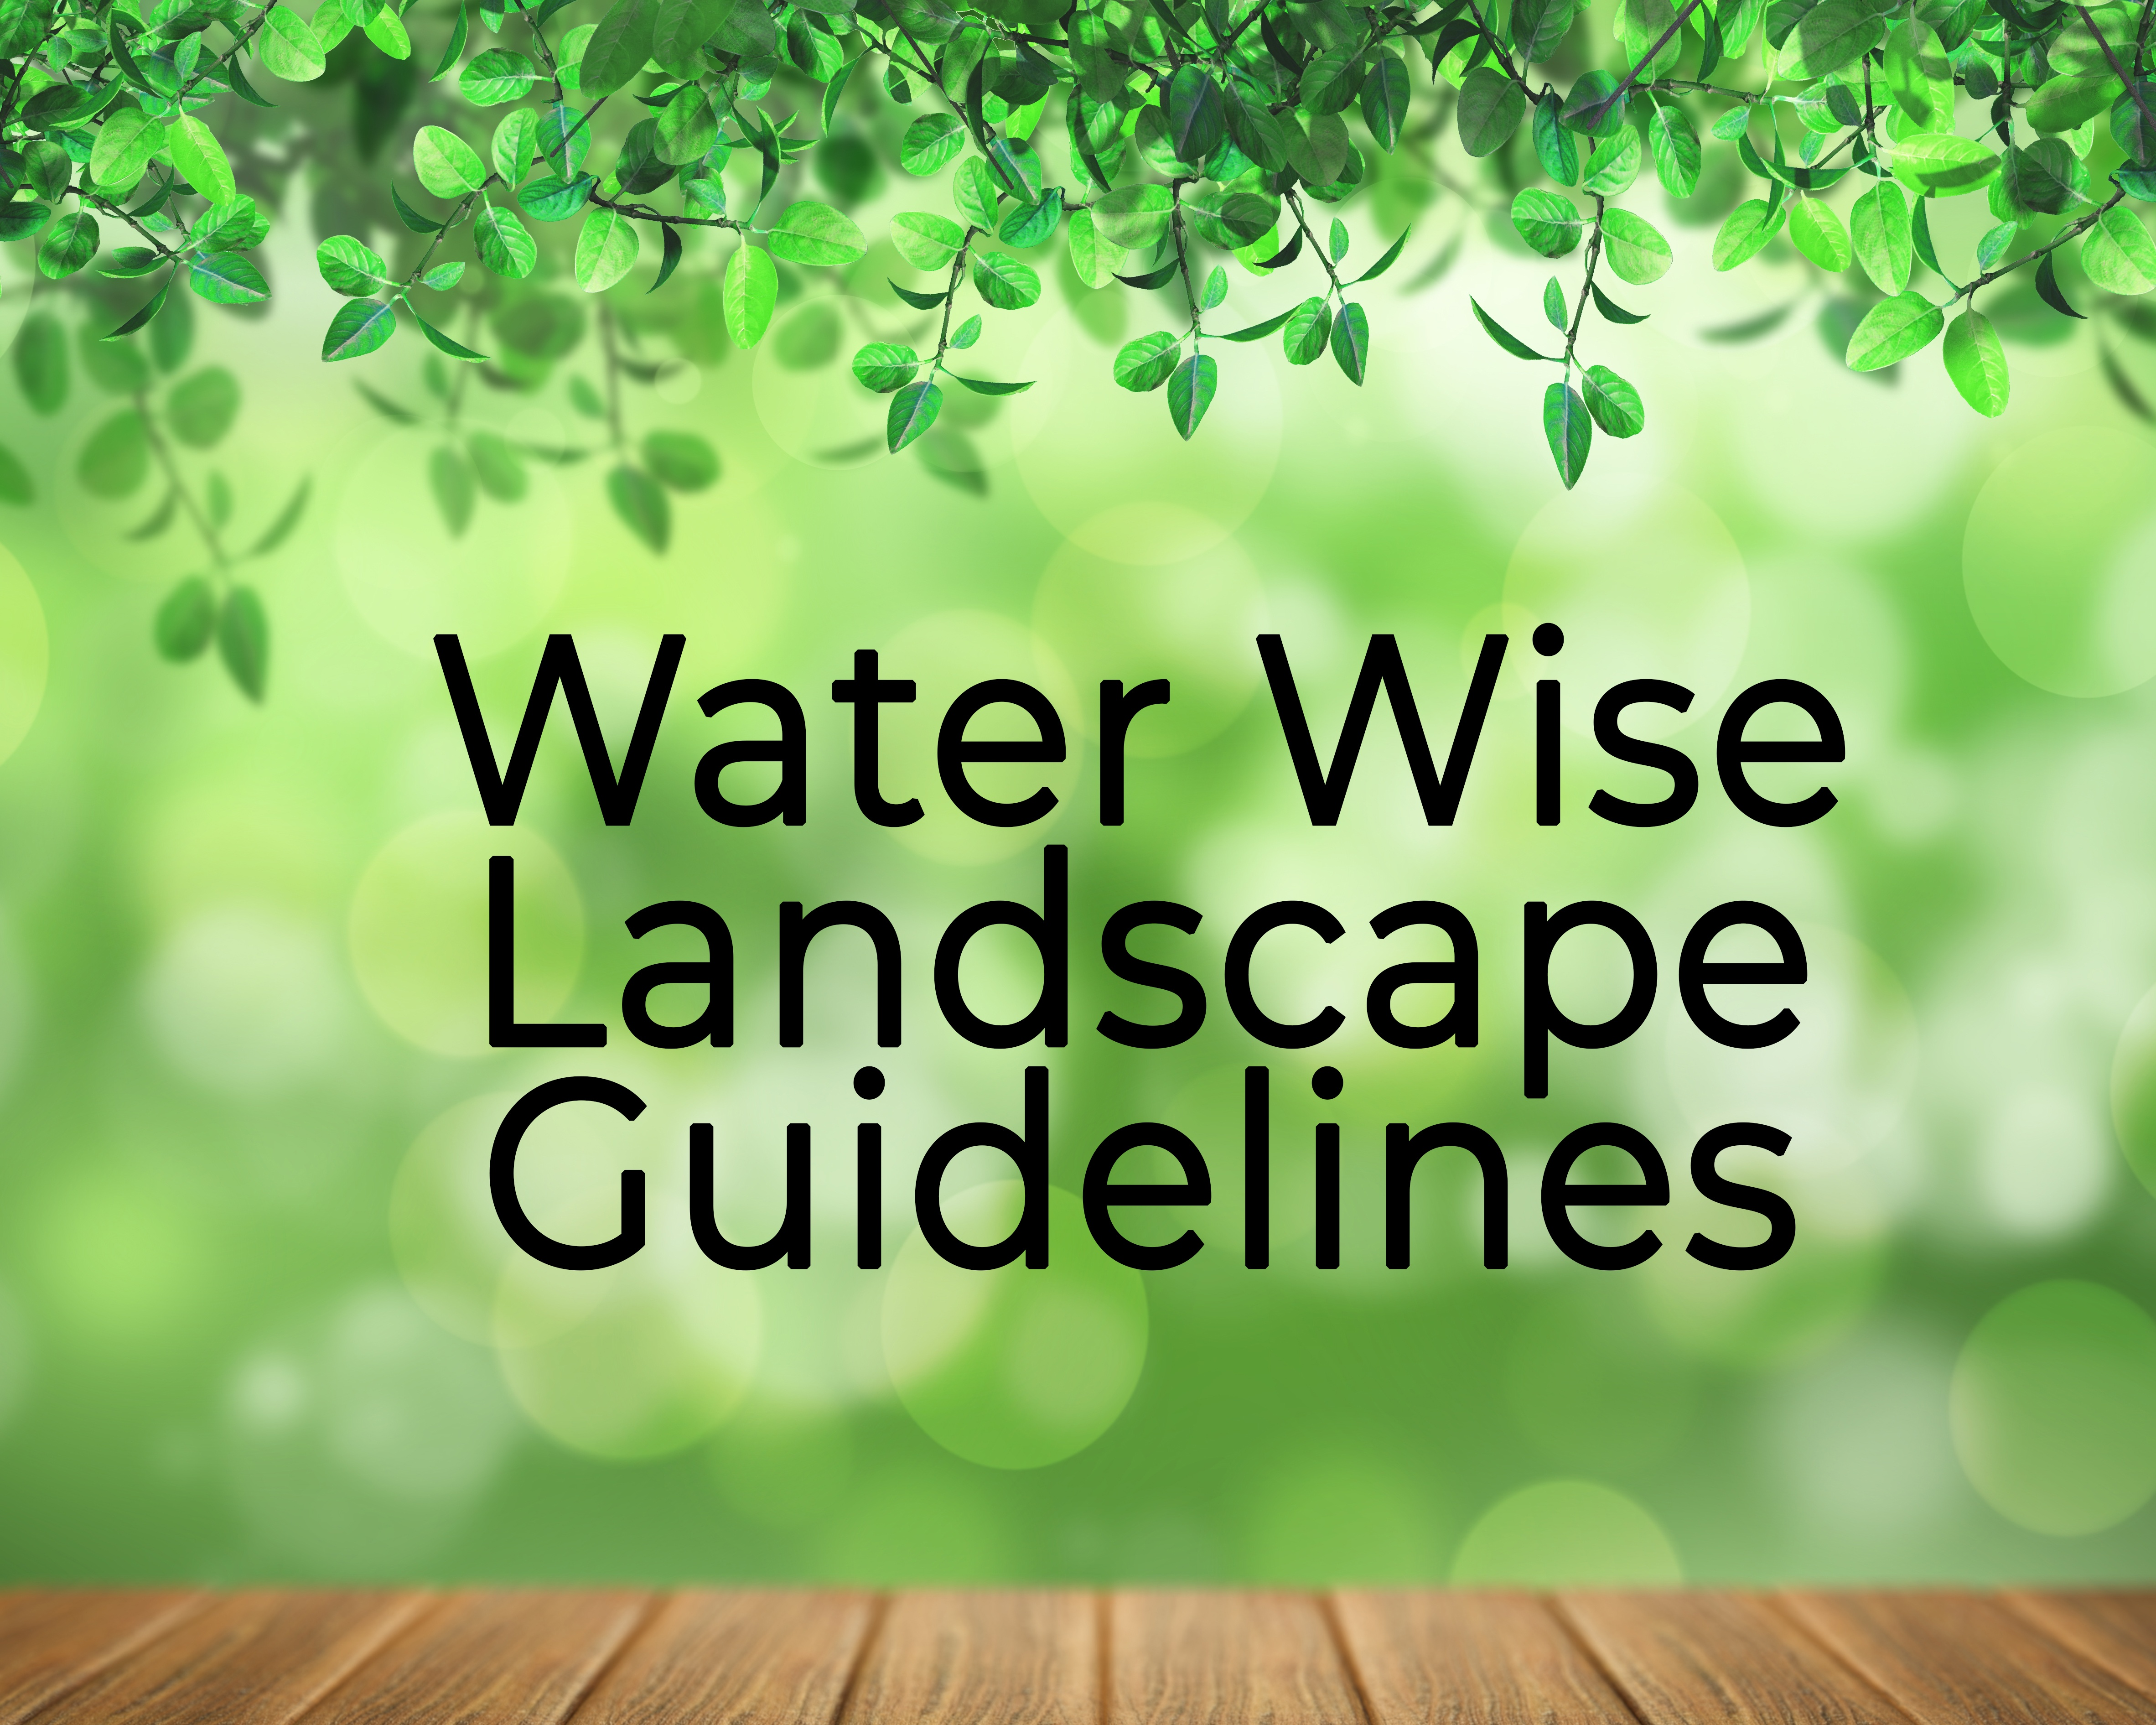 water wise guidelines